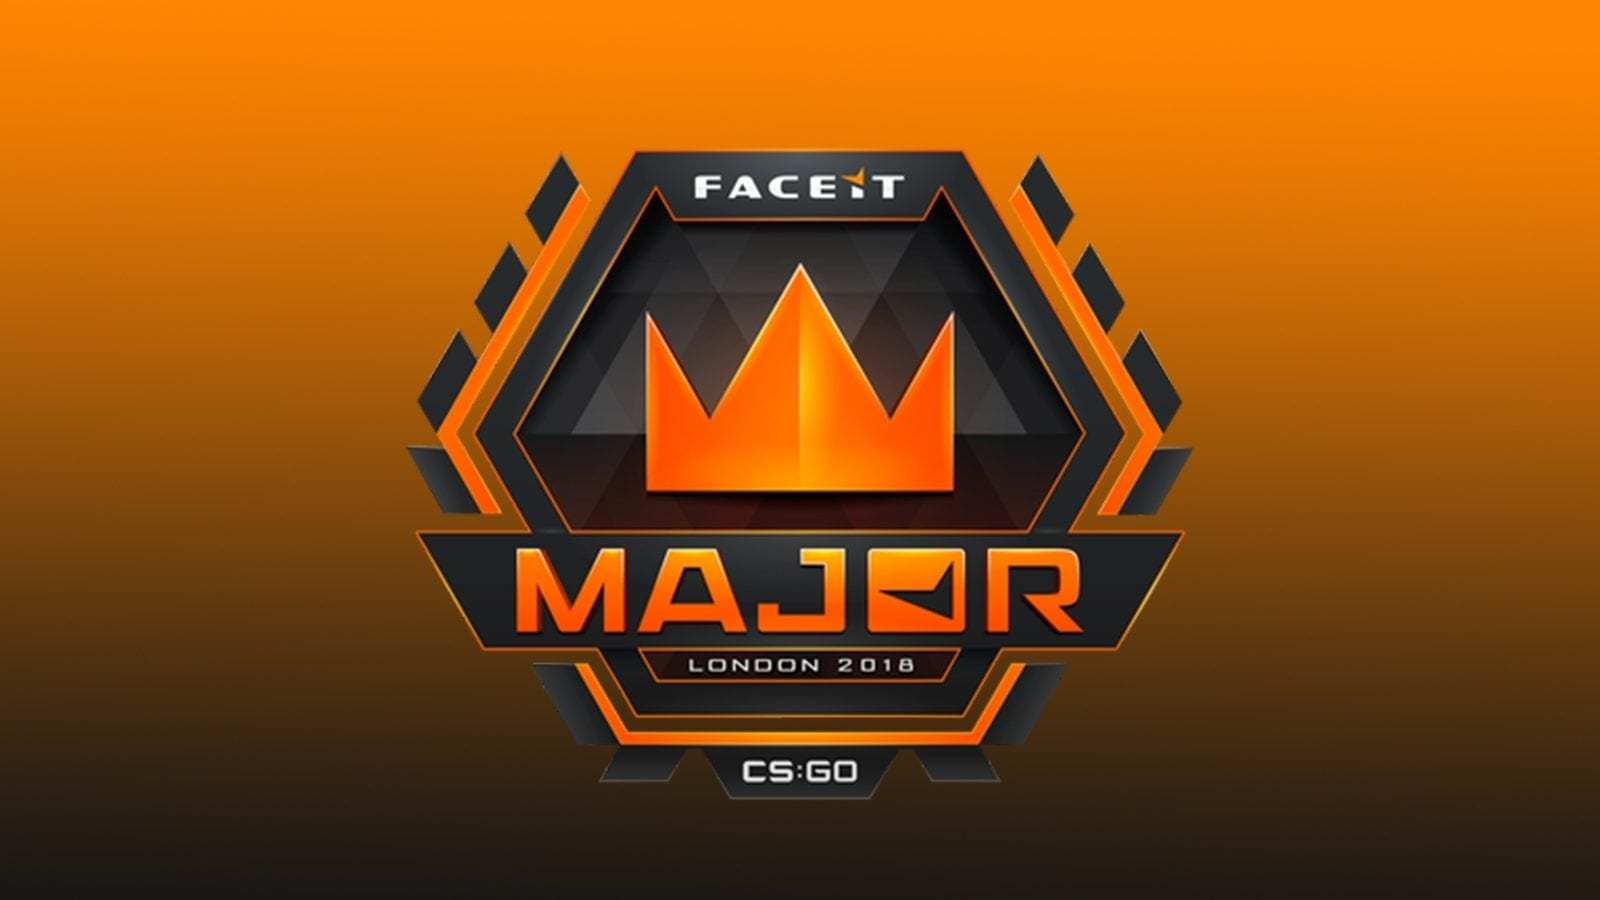 Major Faceit